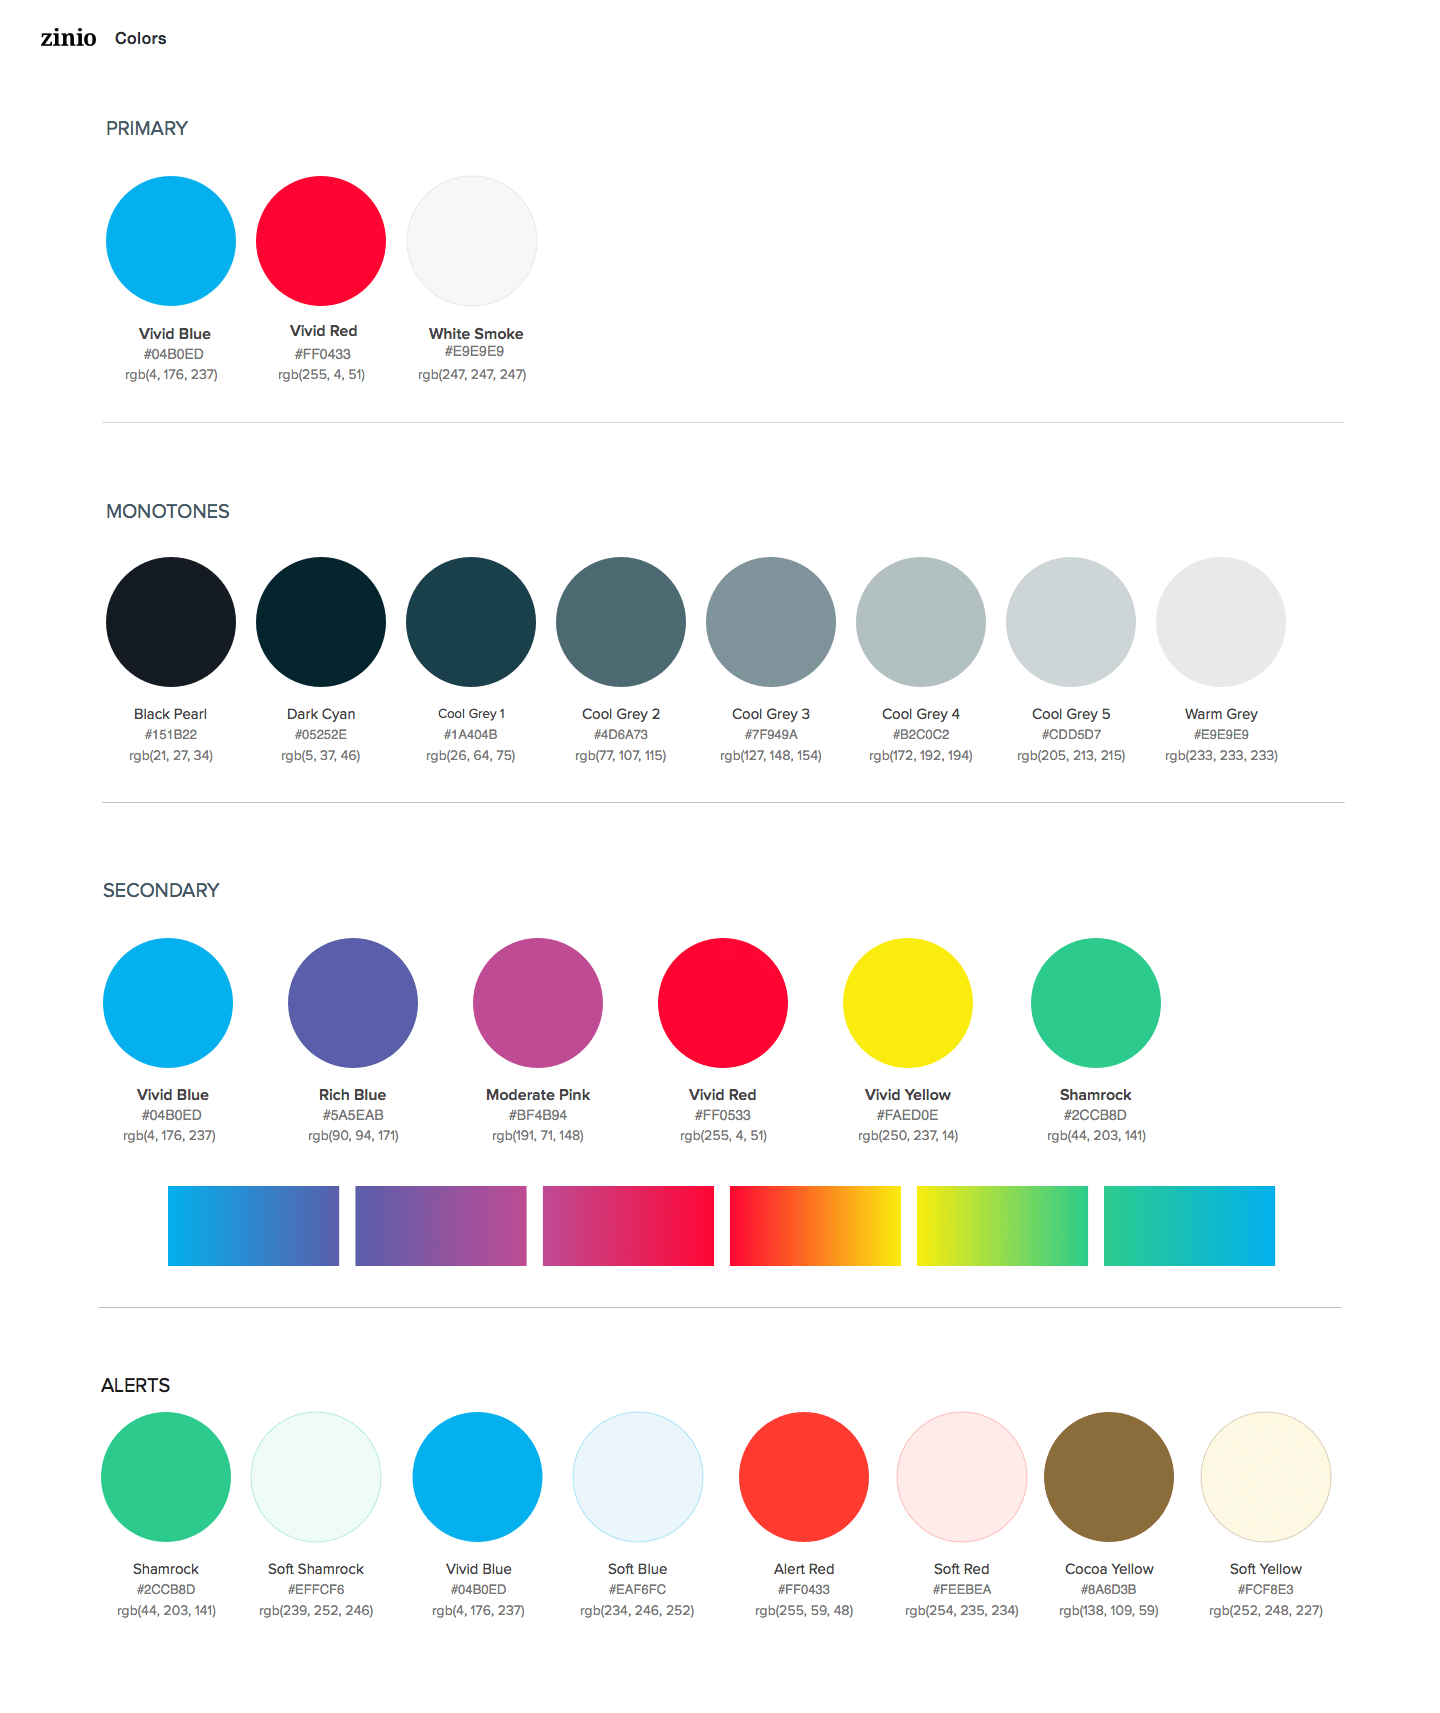 Colors_brand-product-oval